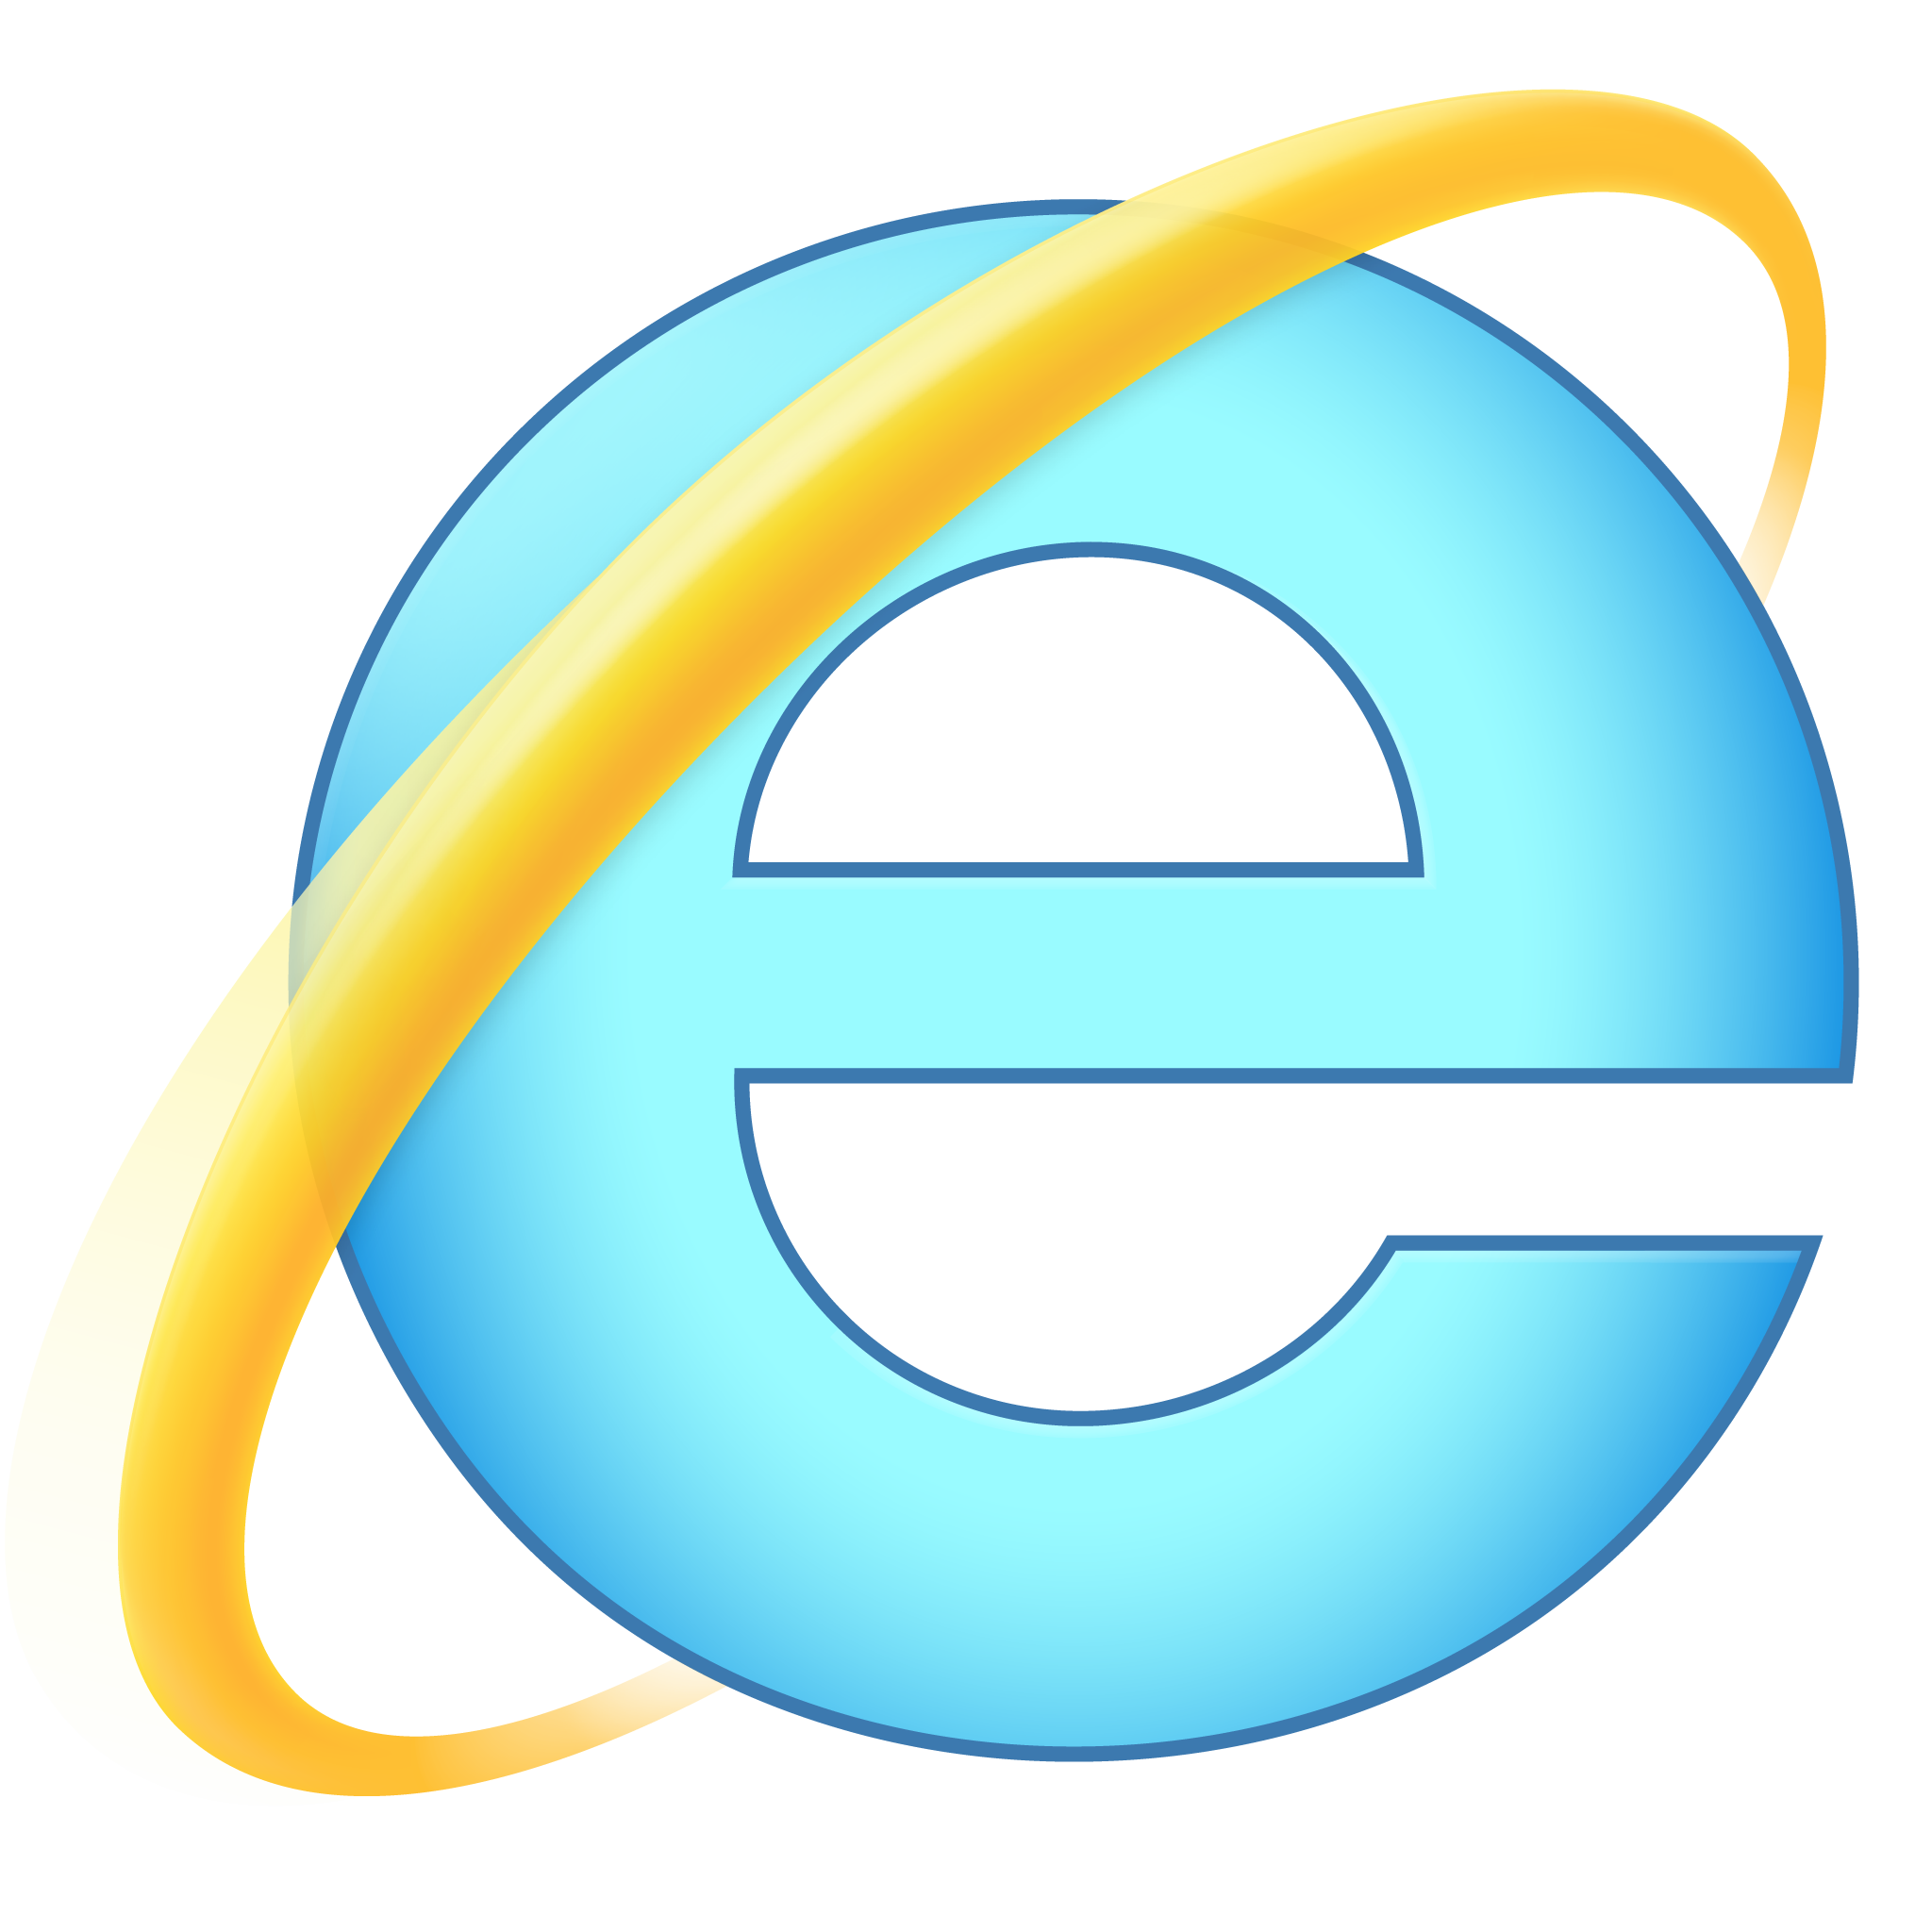 internet explorer bing images